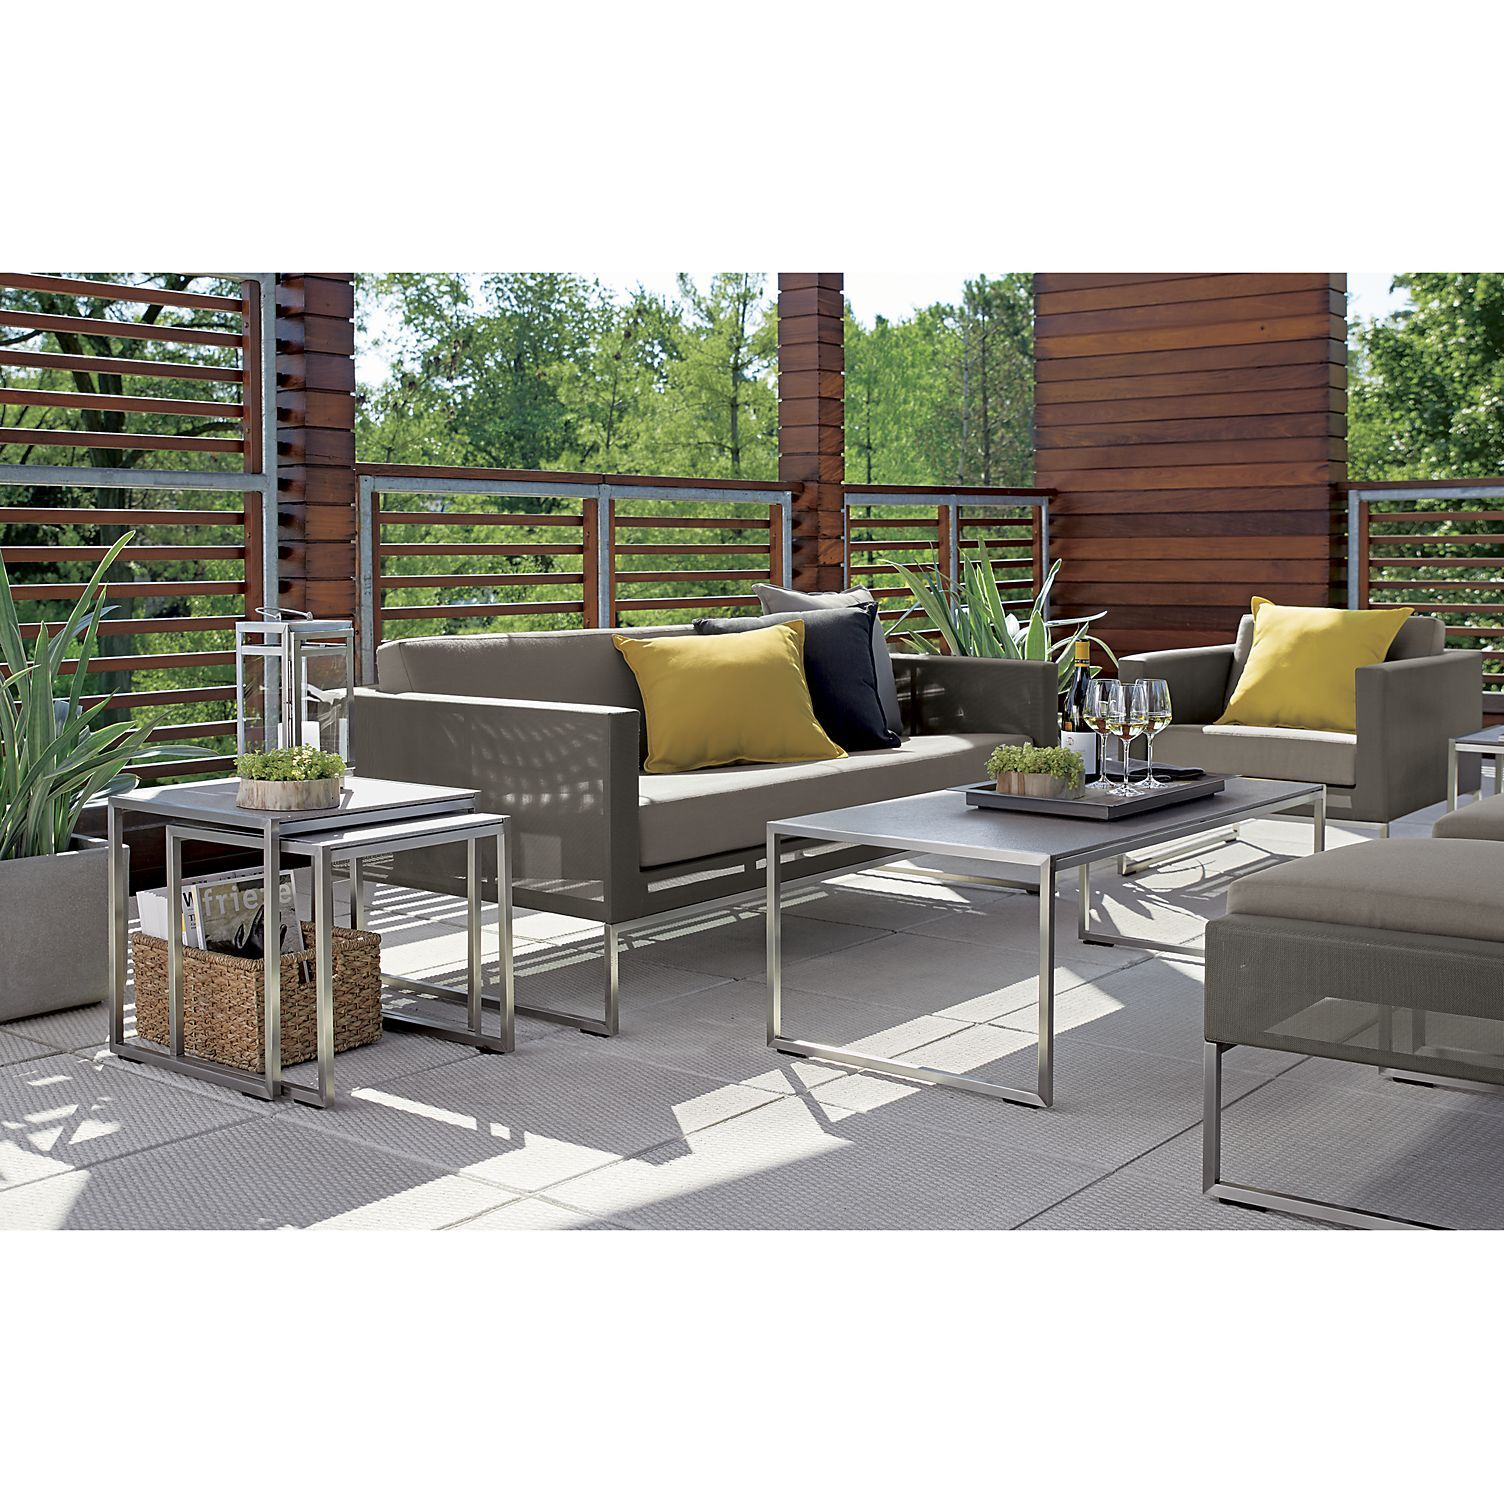 Dune Taupe Sofa with Sunbrella Cushions + Reviews | Crate ... on Dune Outdoor Living id=93741